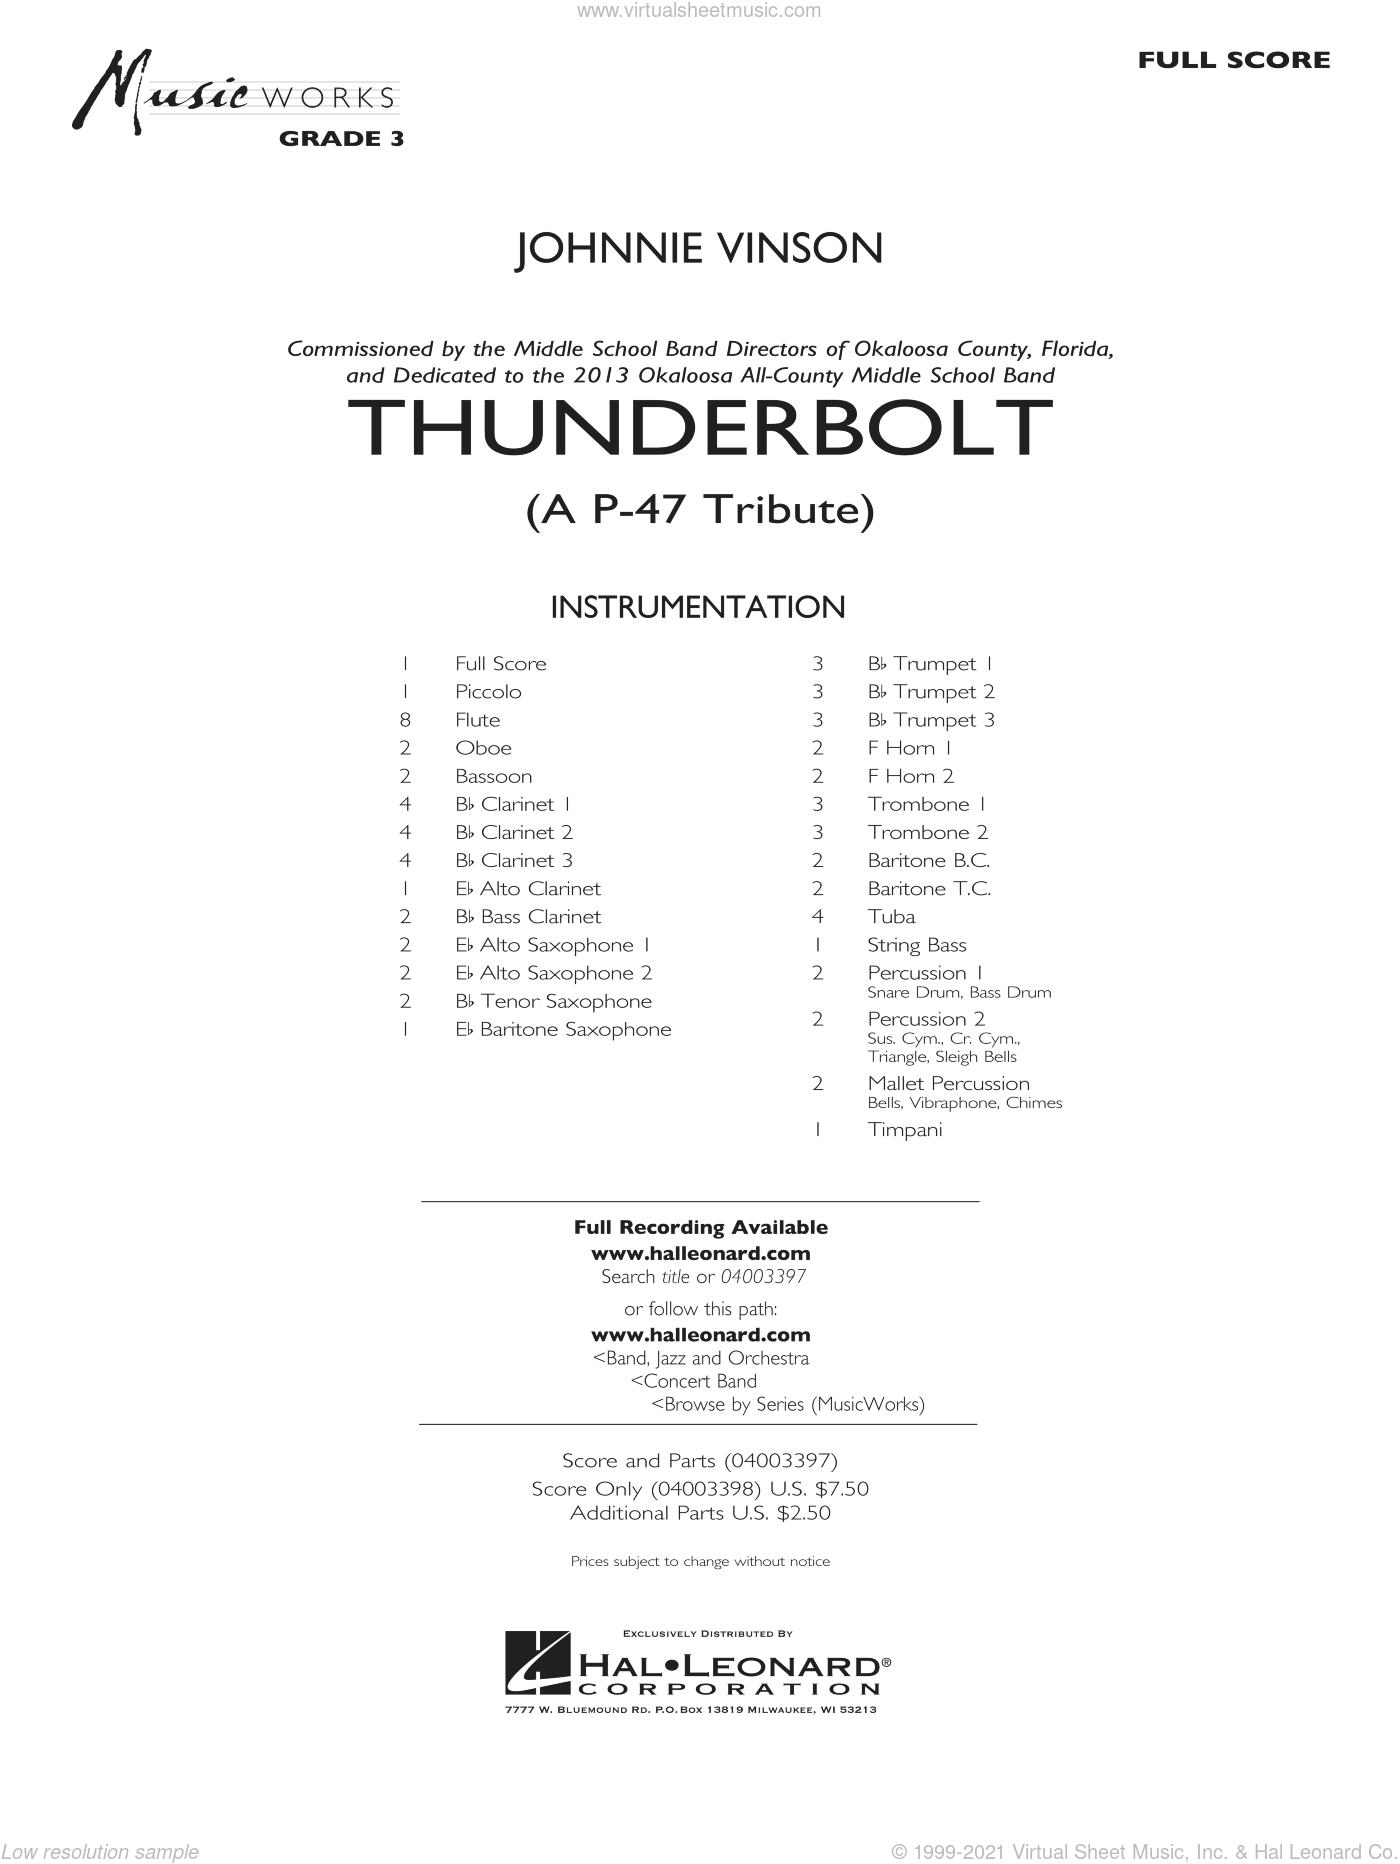 Thunderbolt (A P-47 Tribute) sheet music for concert band (full score) by Johnnie Vinson